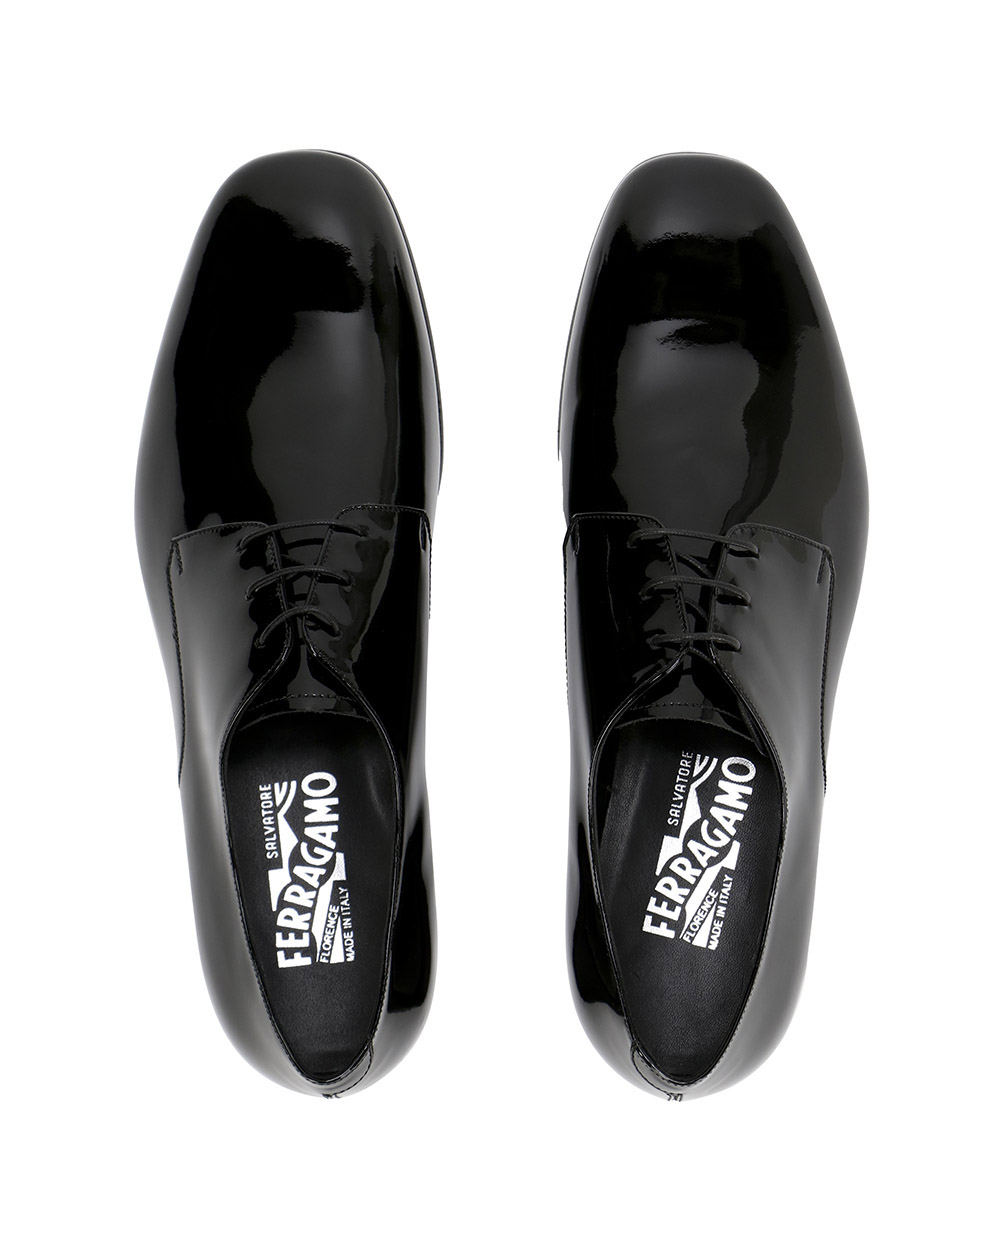 Patent Leather Oxford Shoes 3